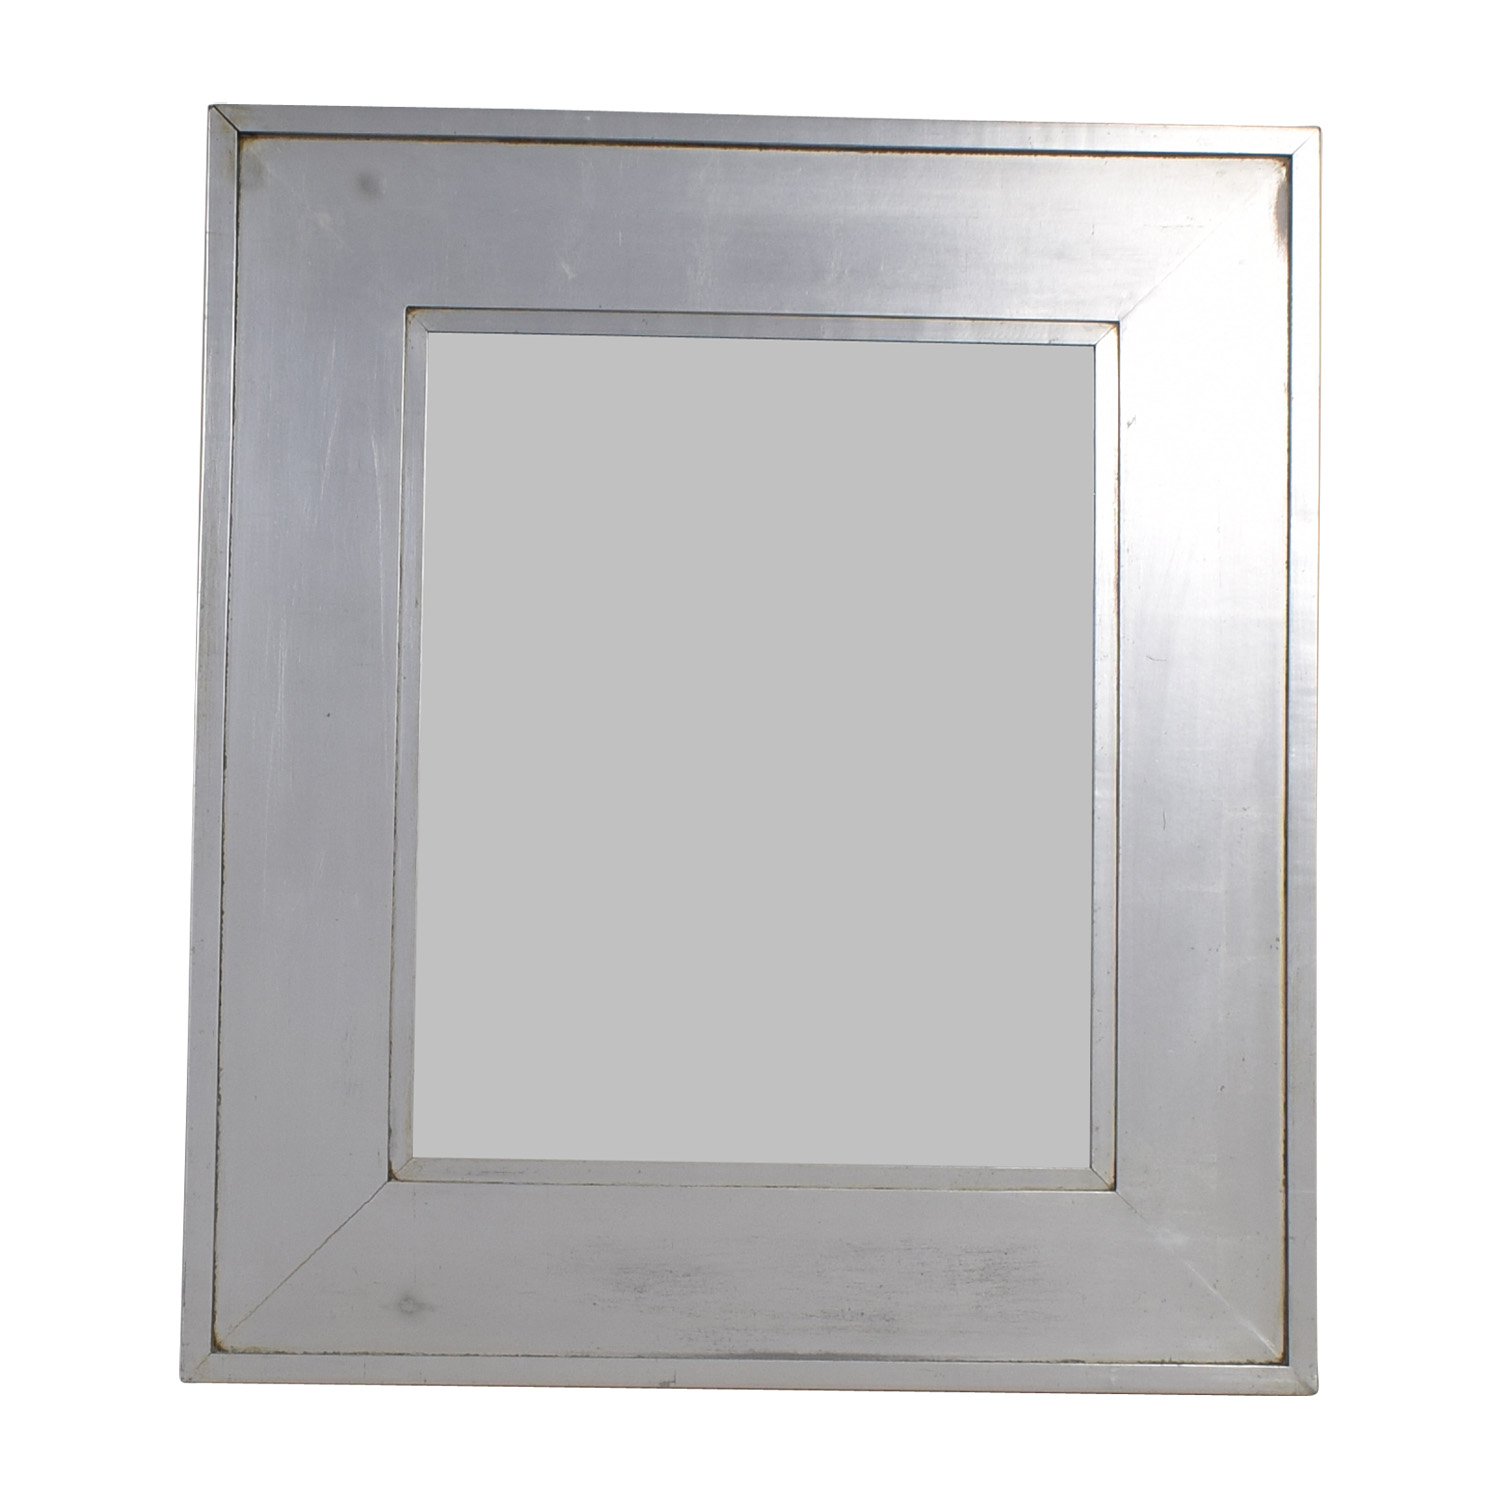 Crate & Barrel Crate & Barrel Silver Frames Square Mirror nj